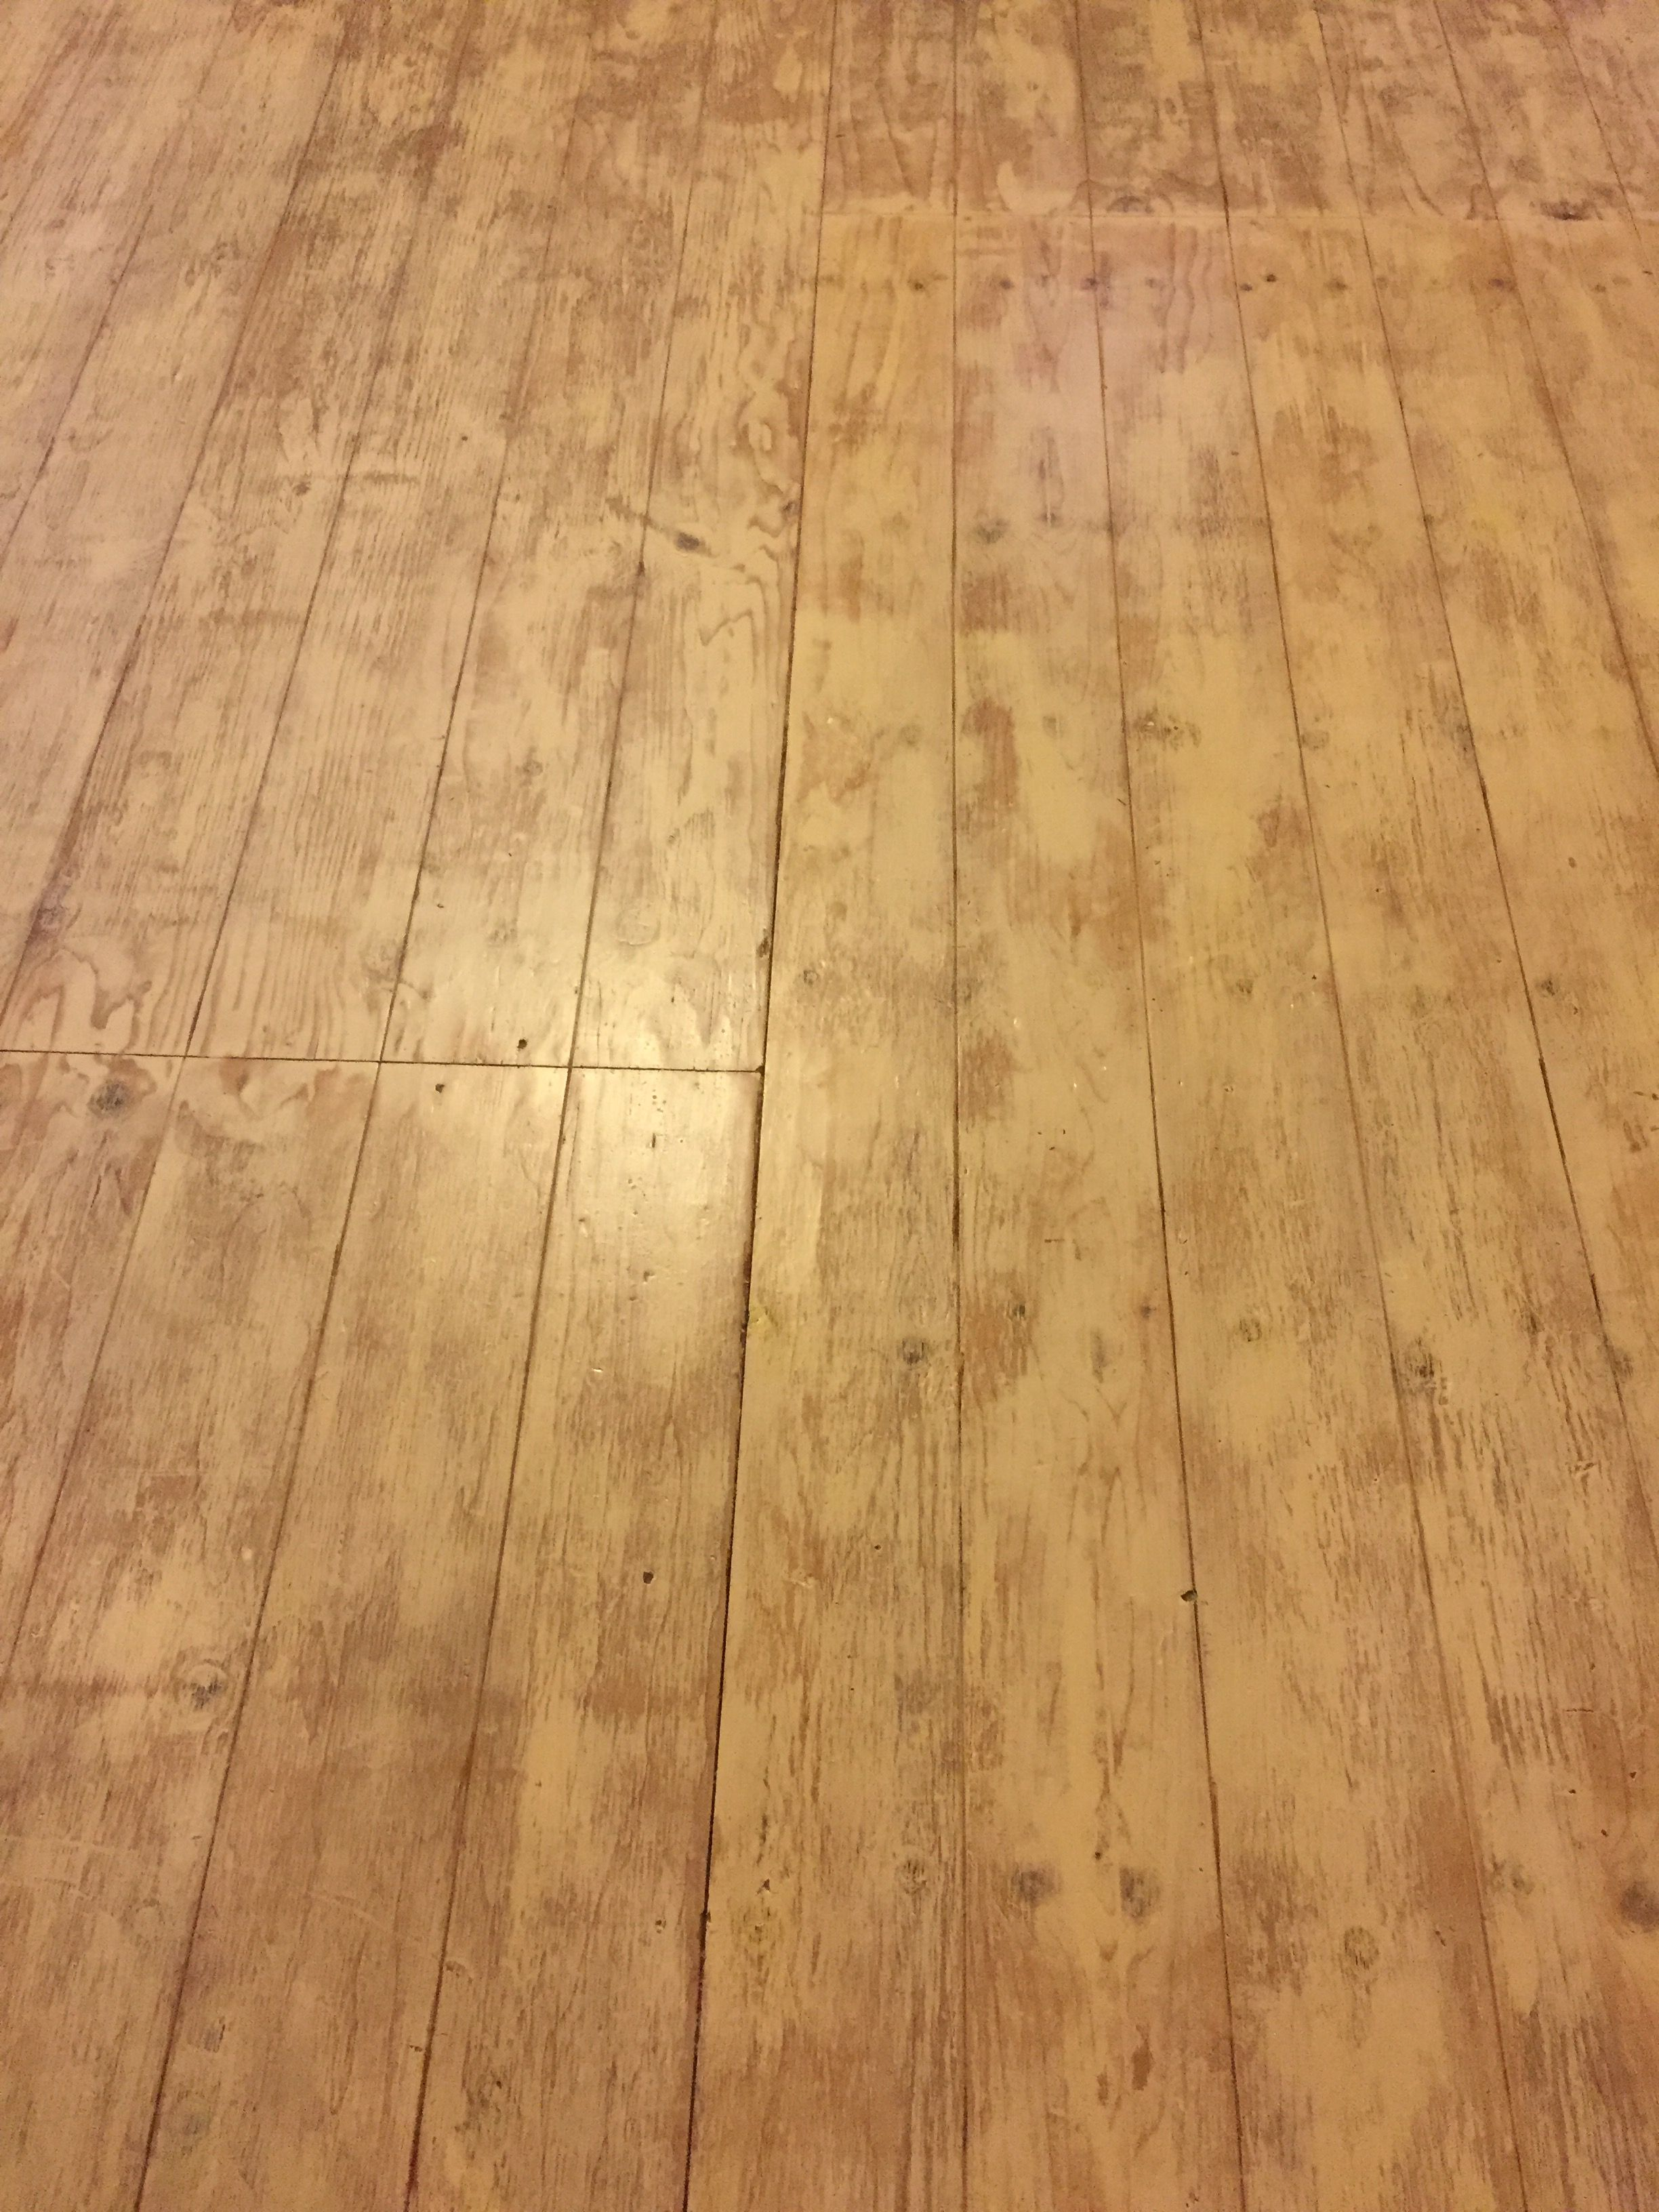 Whitewash Plywood Subfloor Faux Planks Routed In Using 1 8 Deep V Groove Bit And A Sled Jig As A Gui Painted Wood Floors Faux Wood Flooring Plywood Flooring